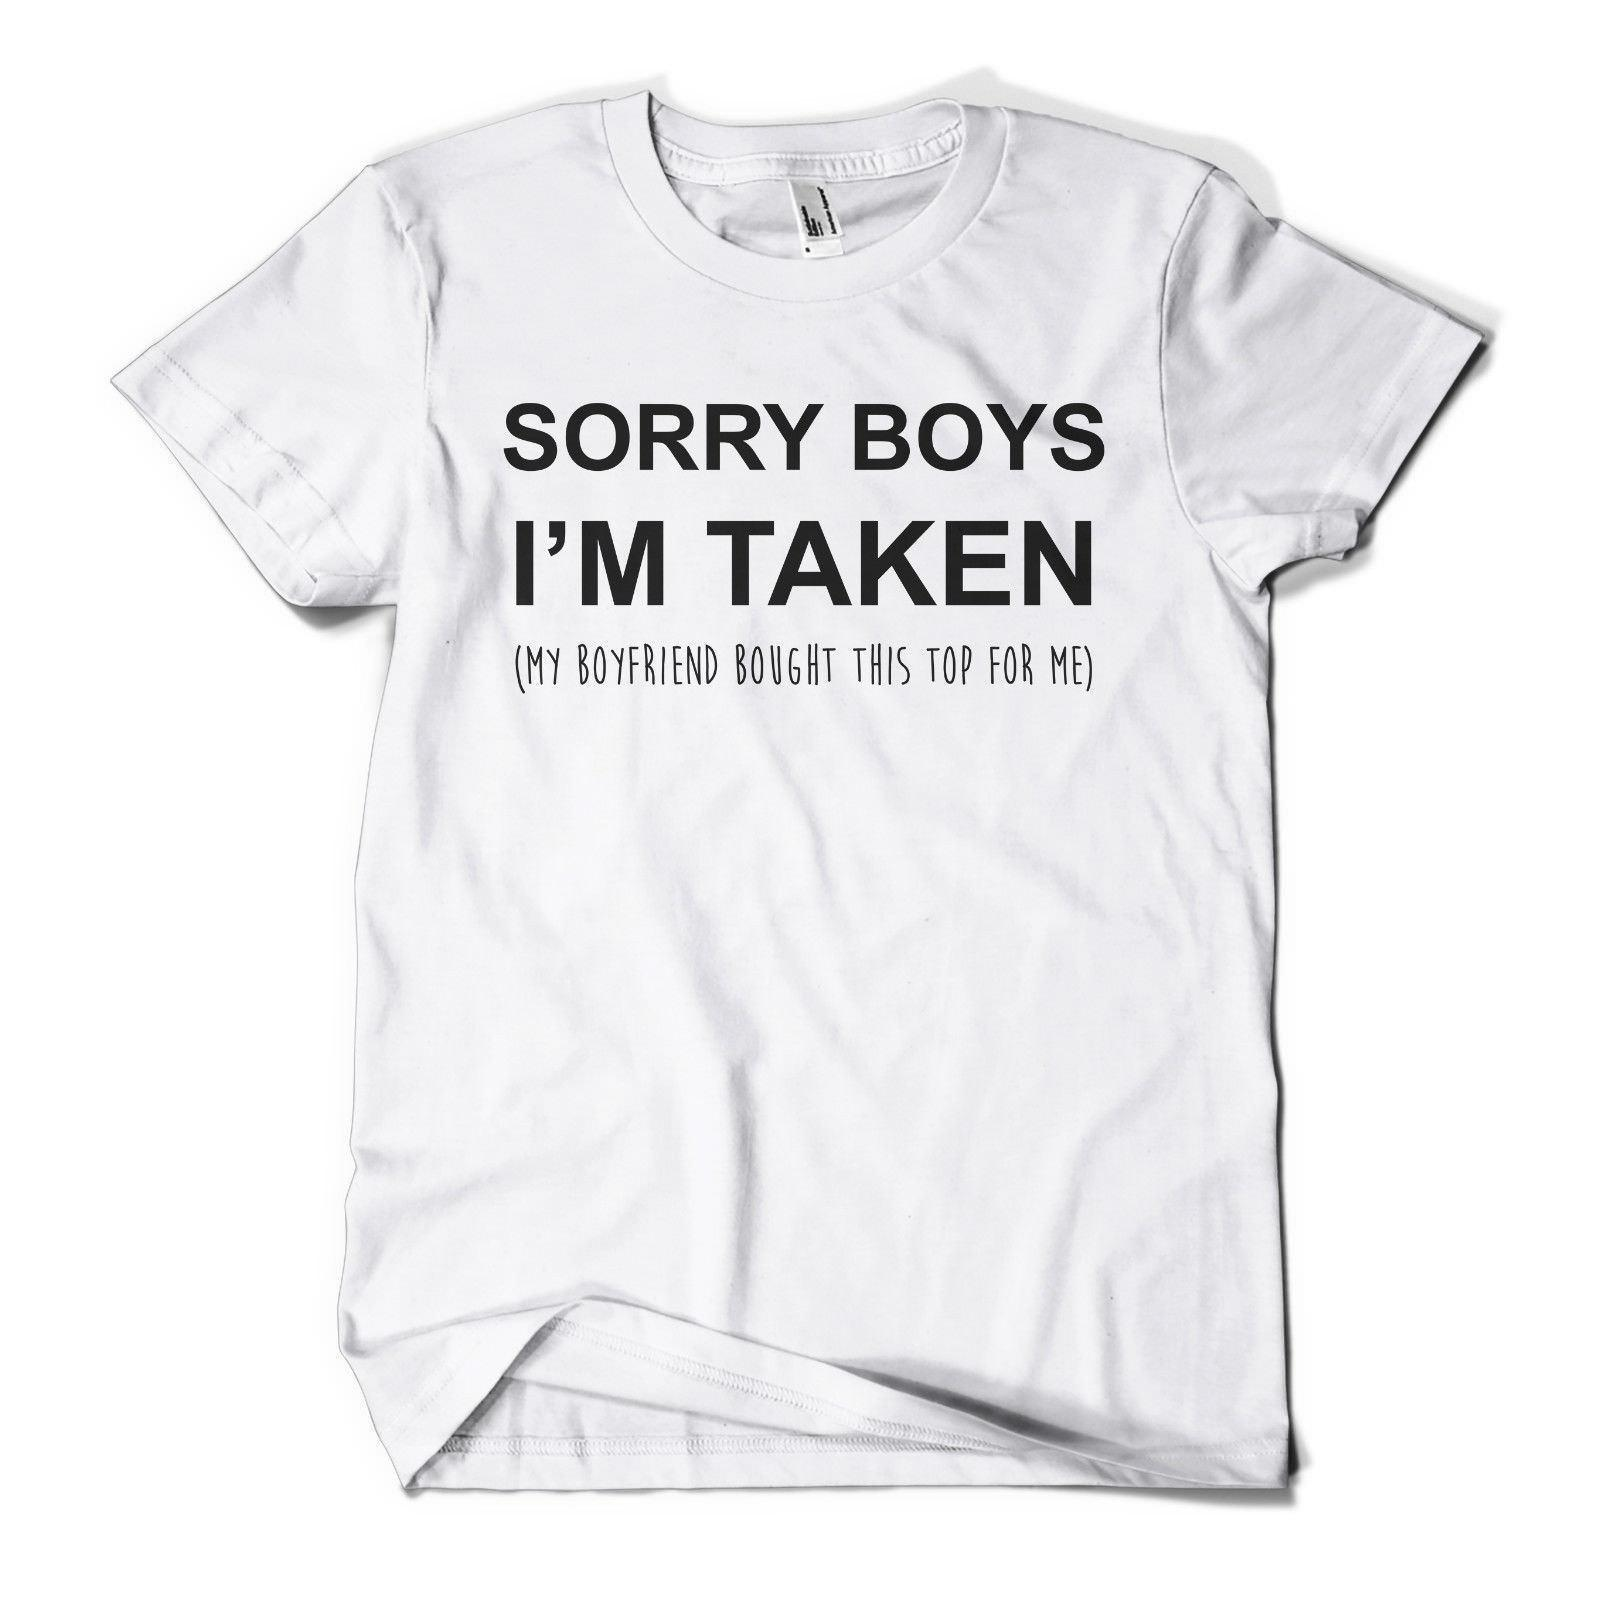 455c66a9d5 Sorry Boys I'm Taken Printed T Shirt Funny Couple Gift Valentines Day  Boyfriend Funny Tops Tee New Unisex Funny Free Shipping